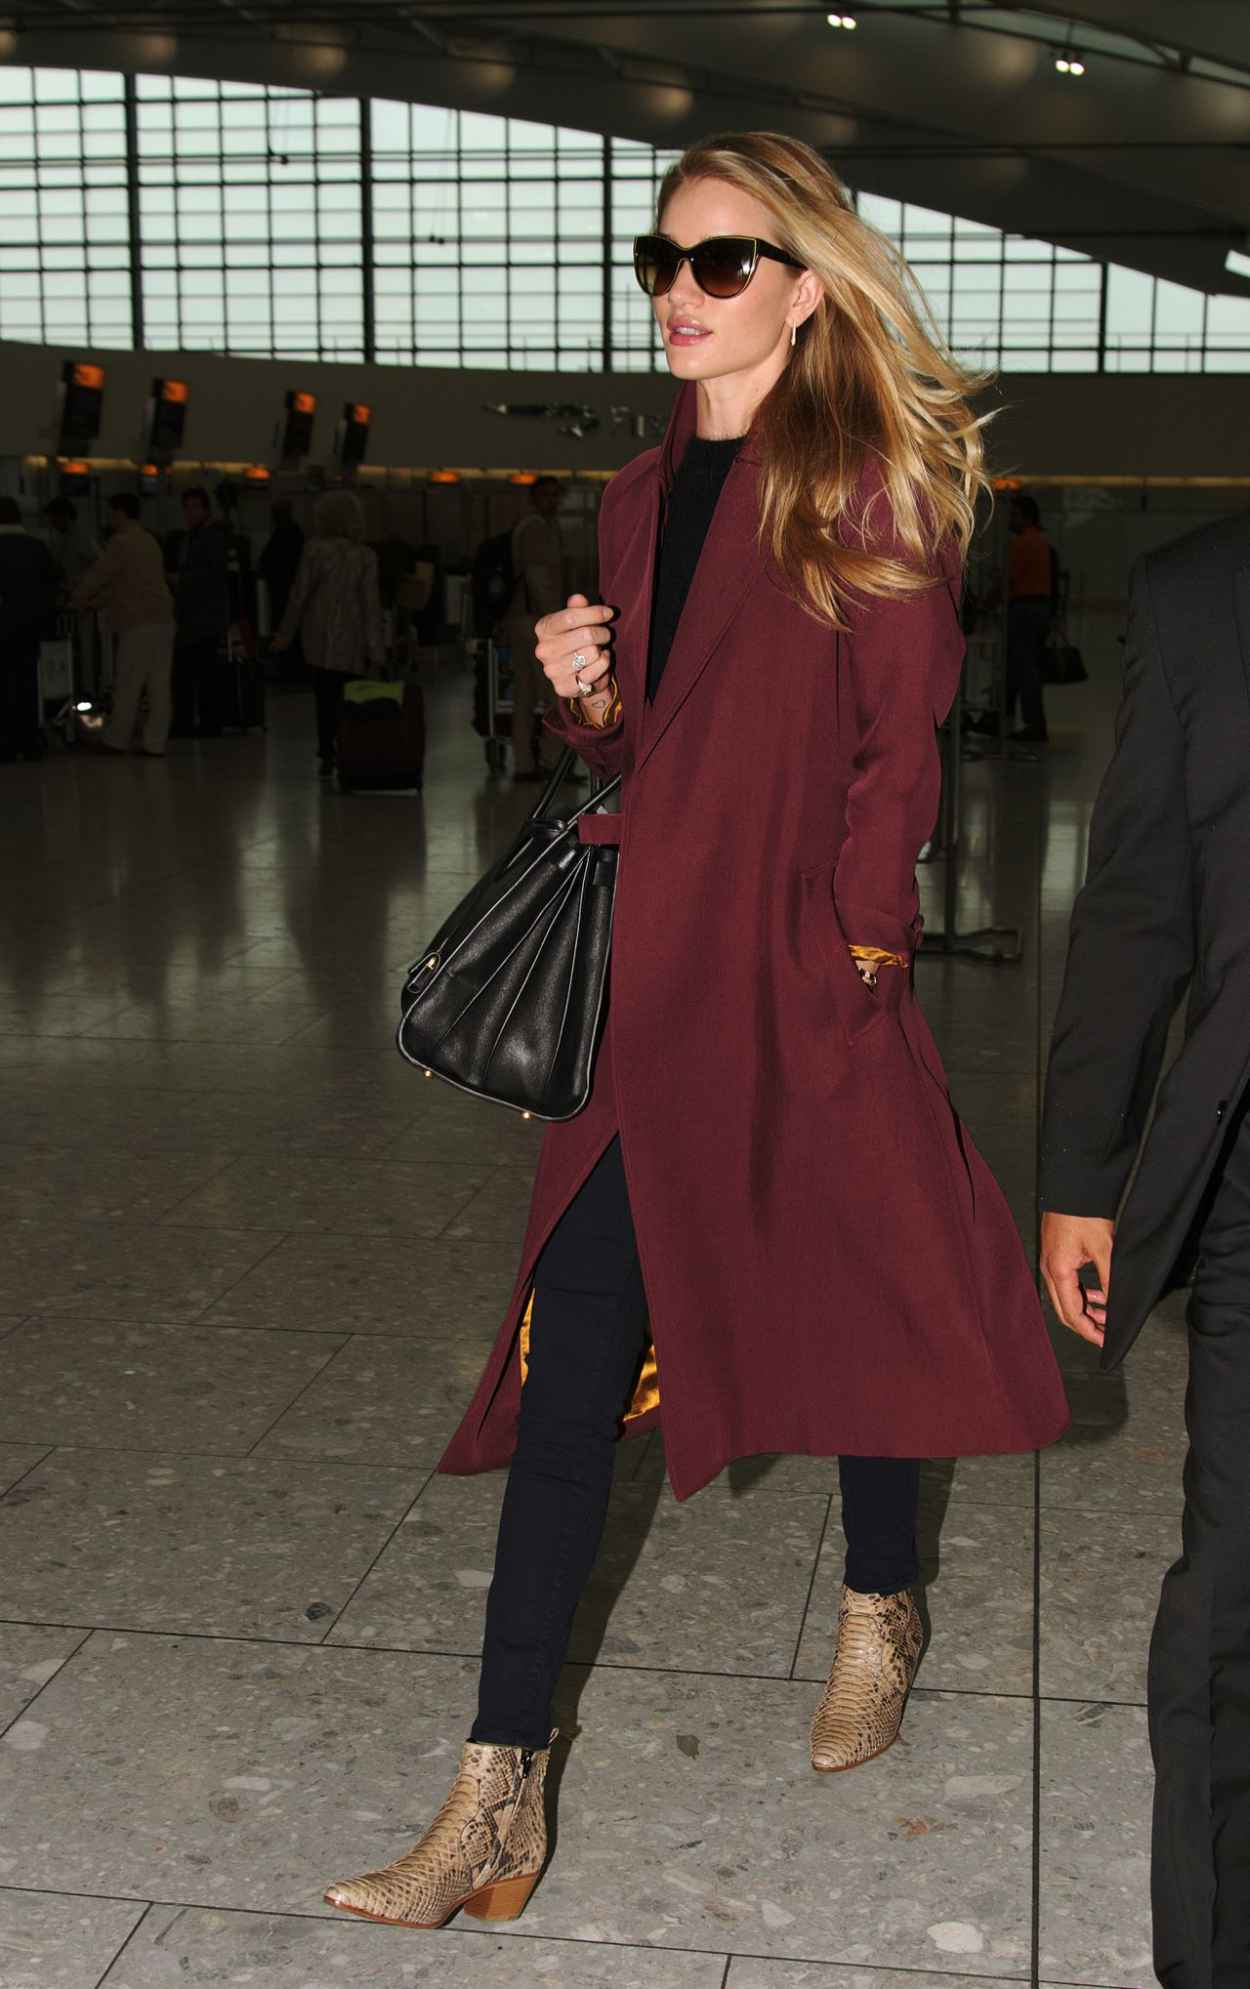 Rosie Huntington-Whiteley at Heathrow Airport in London - May 2015-4